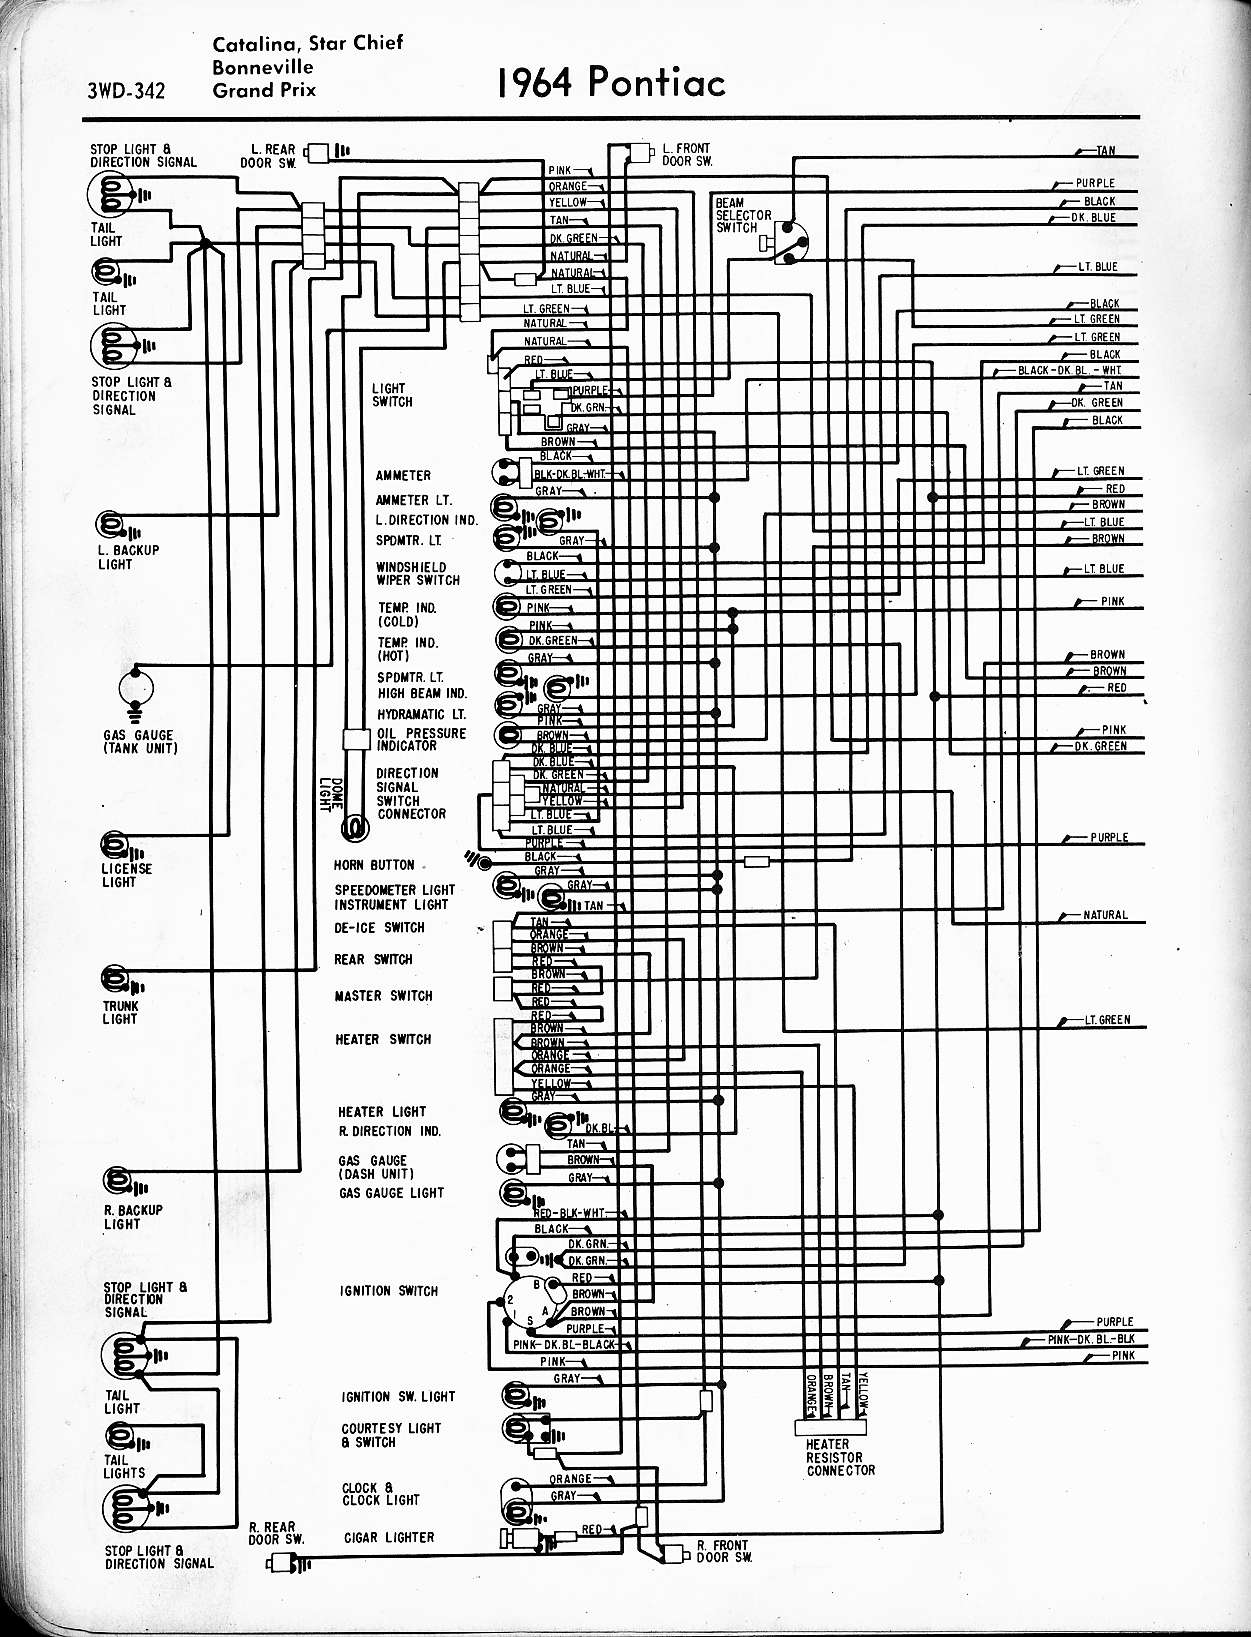 Contemporary Ljy280a Wiring Diagram Image Collection - Everything ...